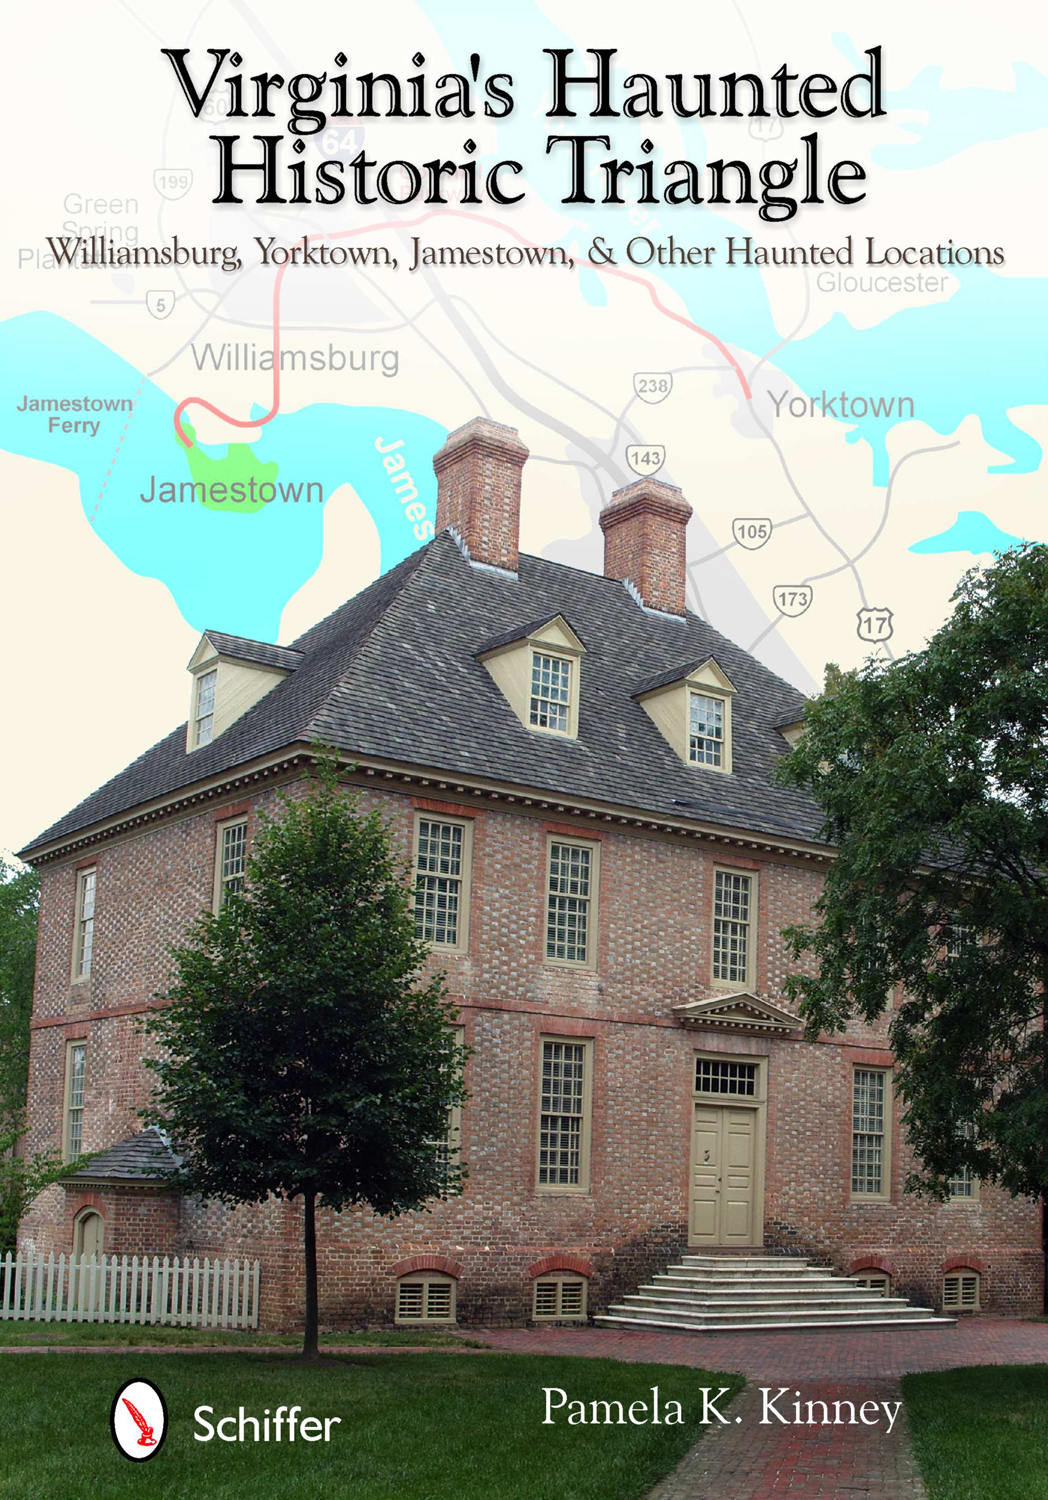 Love Ghost Stories?: Try Virginia's Haunted Historic Triangle